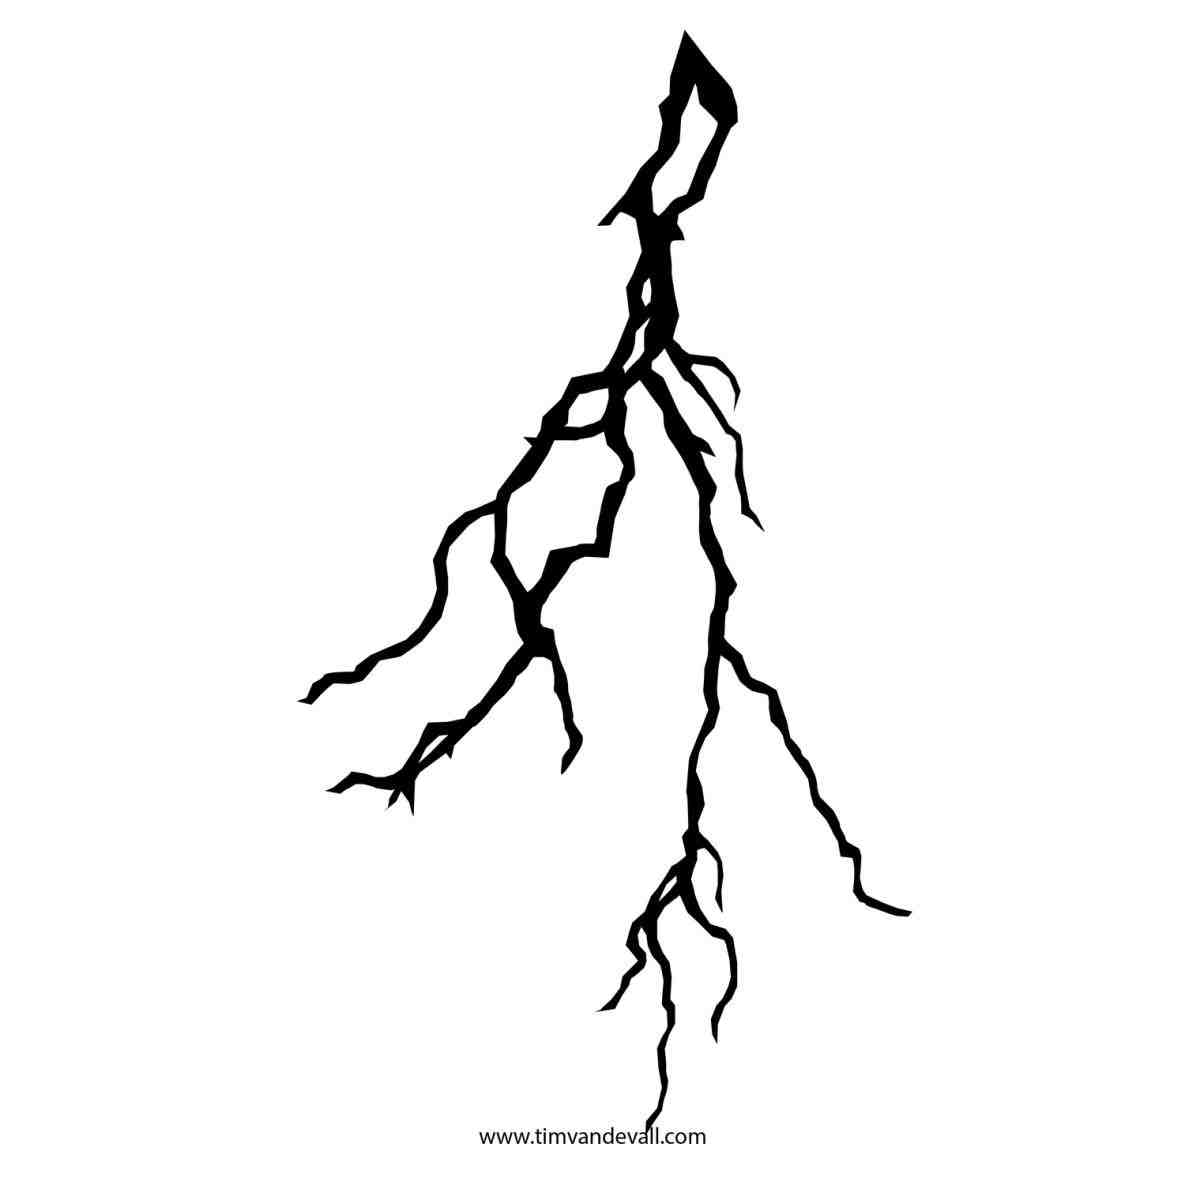 1185x1185 Thunderstorm Lighting Strikes Drawing Clipart Kaboom Pencil